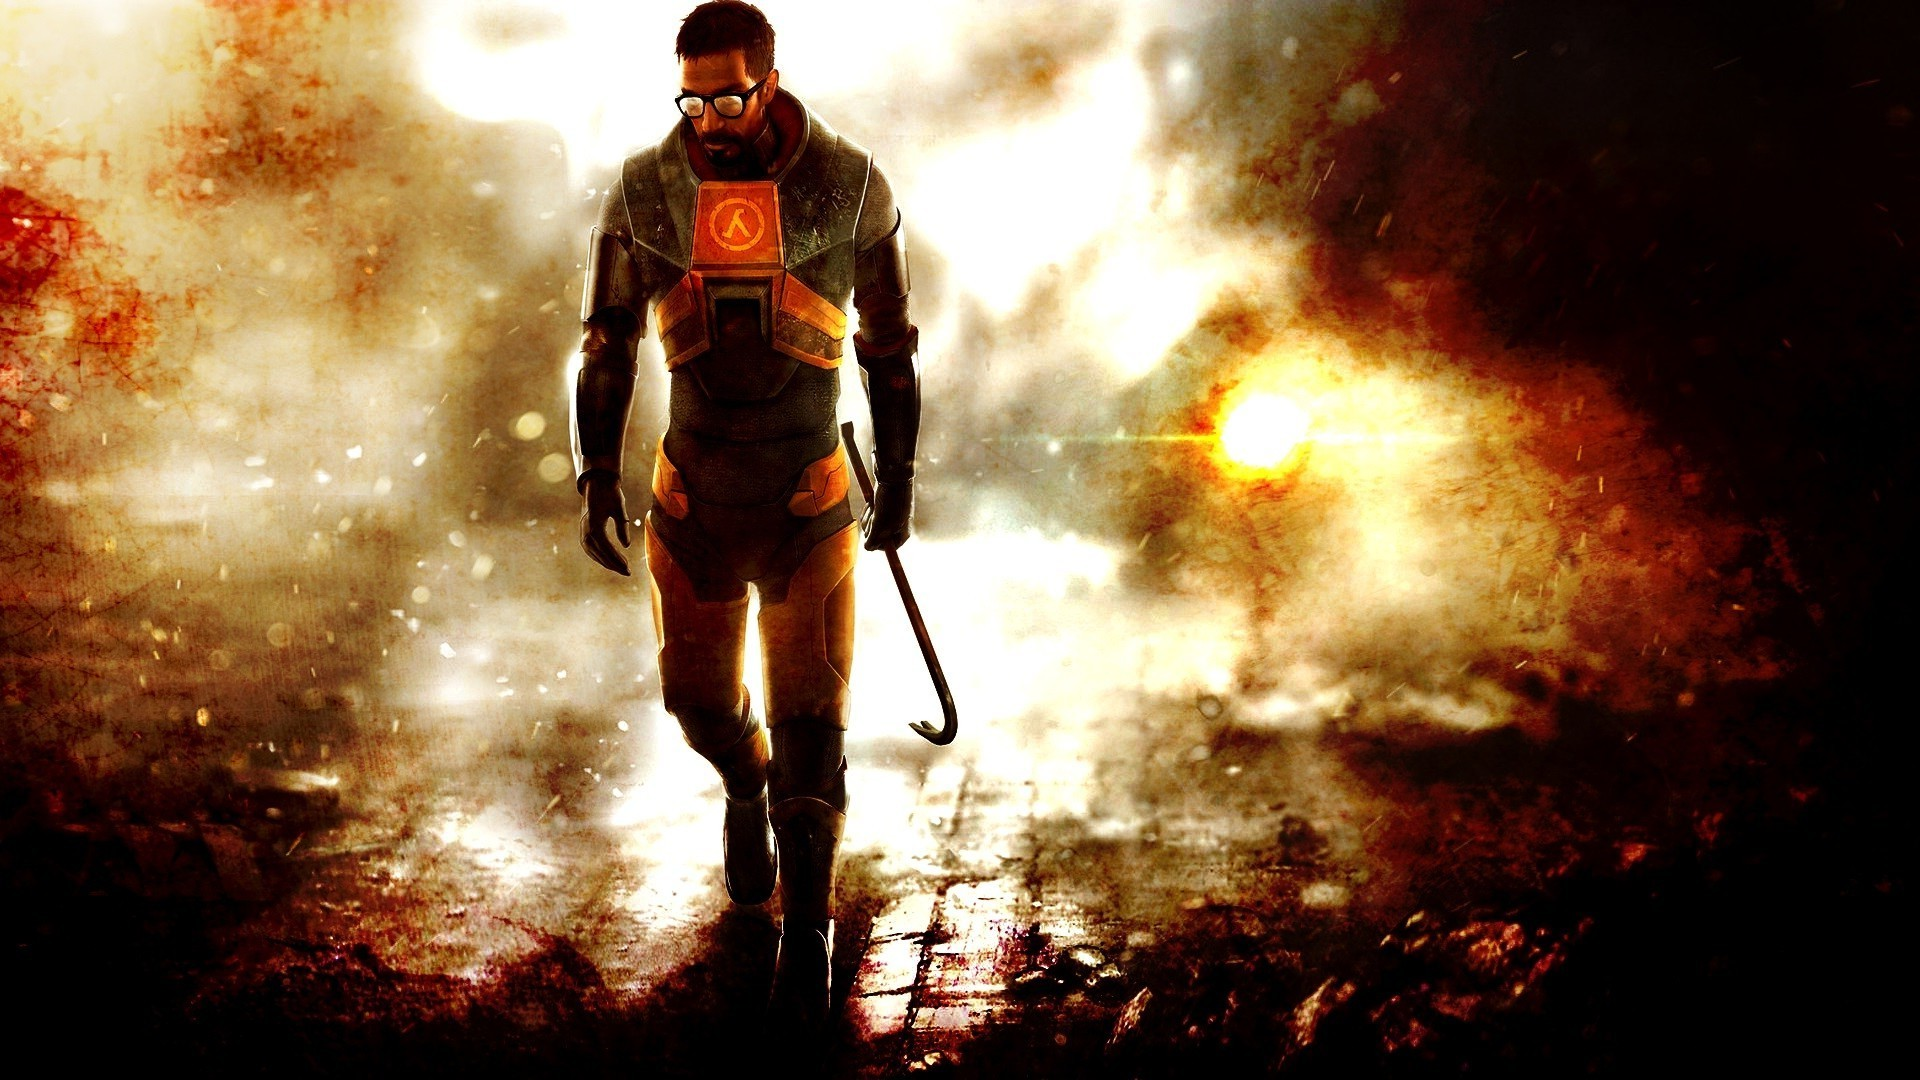 Half Life 2 Wallpaper HD (77+ images)